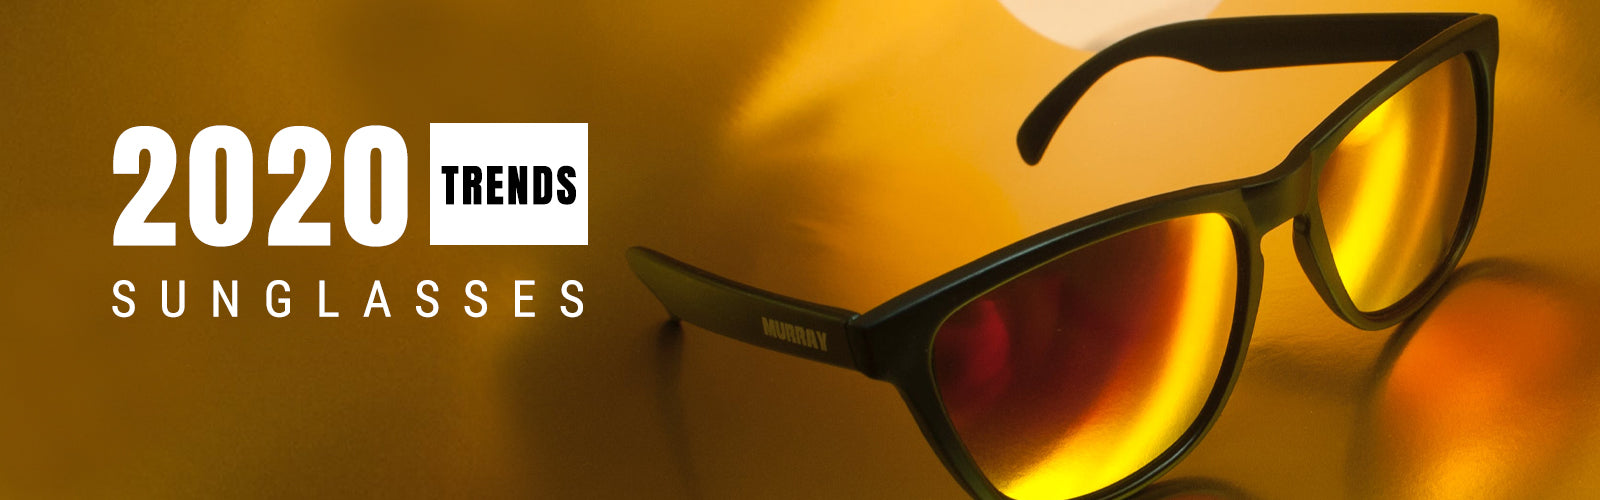 2020 Sunglasses Trends Banner